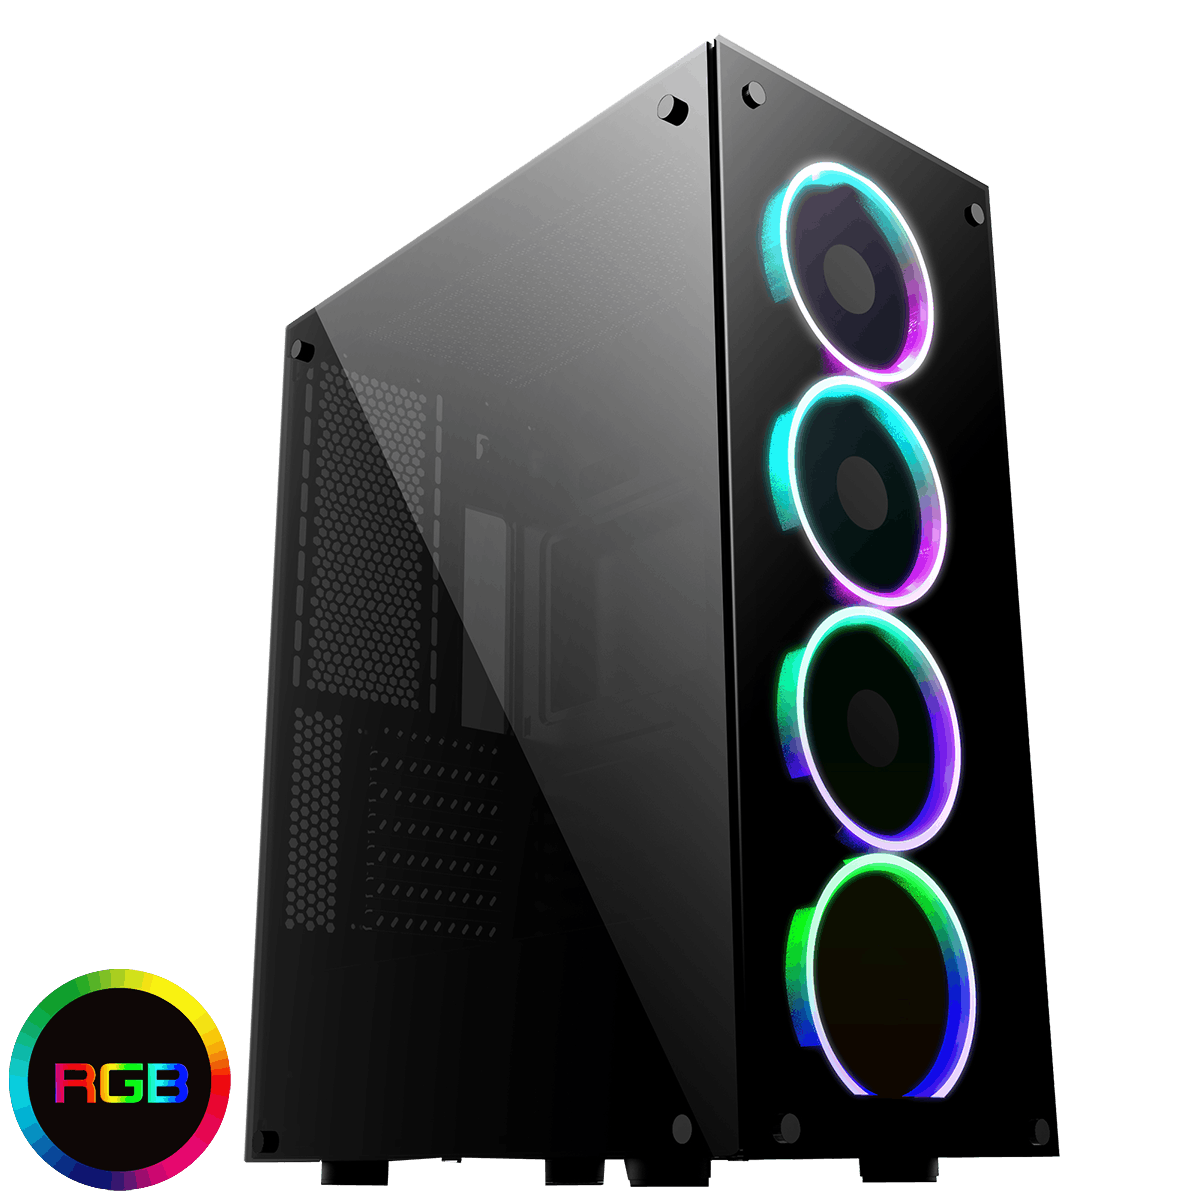 Game Max Predator RGB Full Tempered Glass Gaming Case with MB Sync 3pin RGB Connector